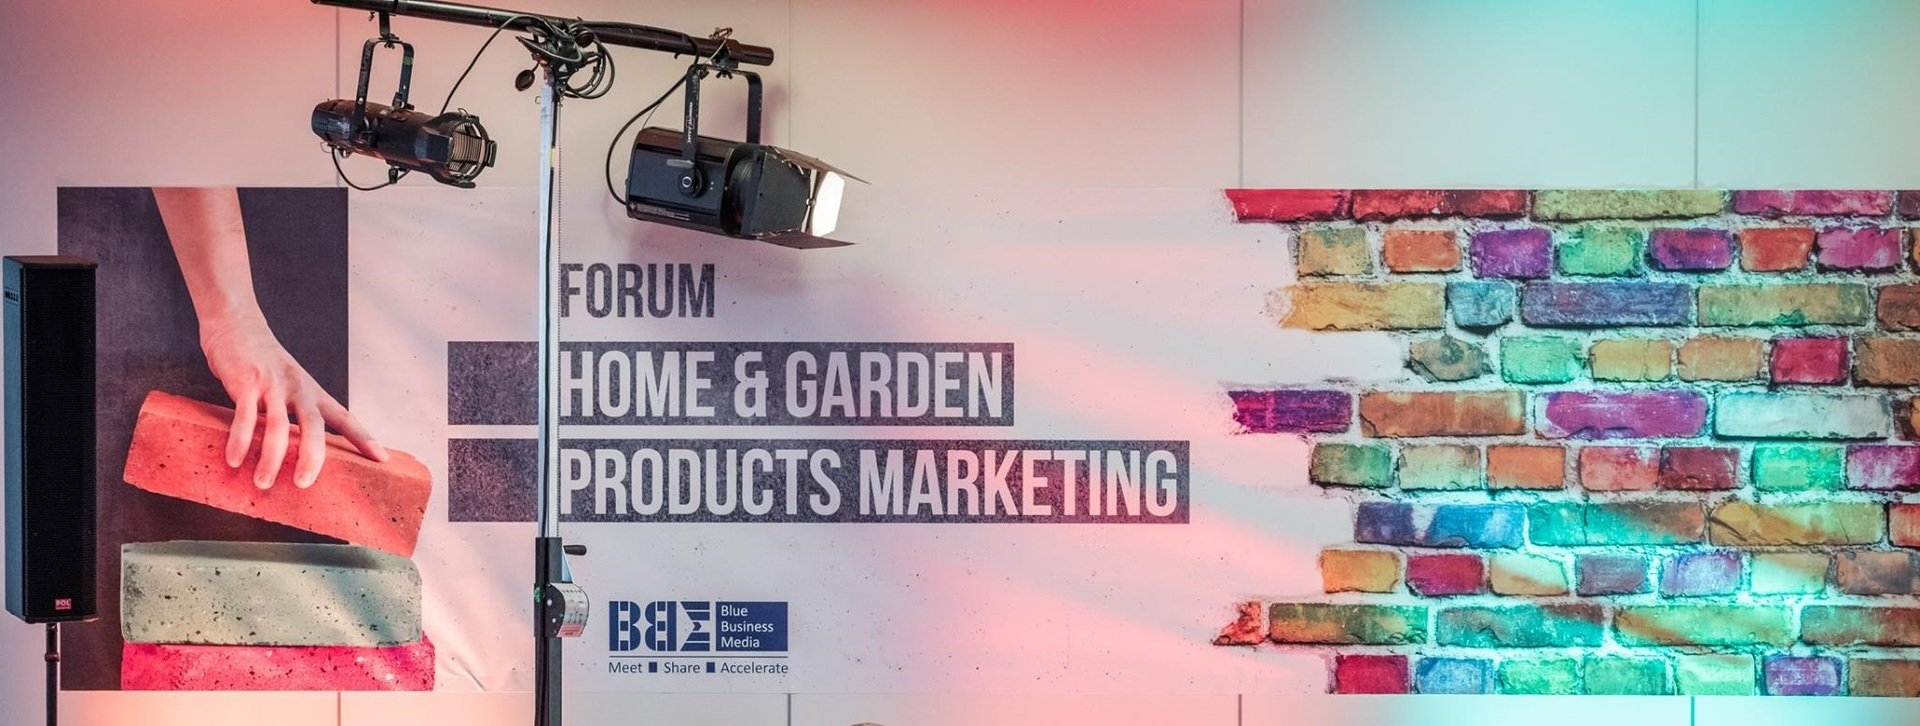 Forum HOME & GARDEN PRODUCTS MARKETING - Homebook Partnerem